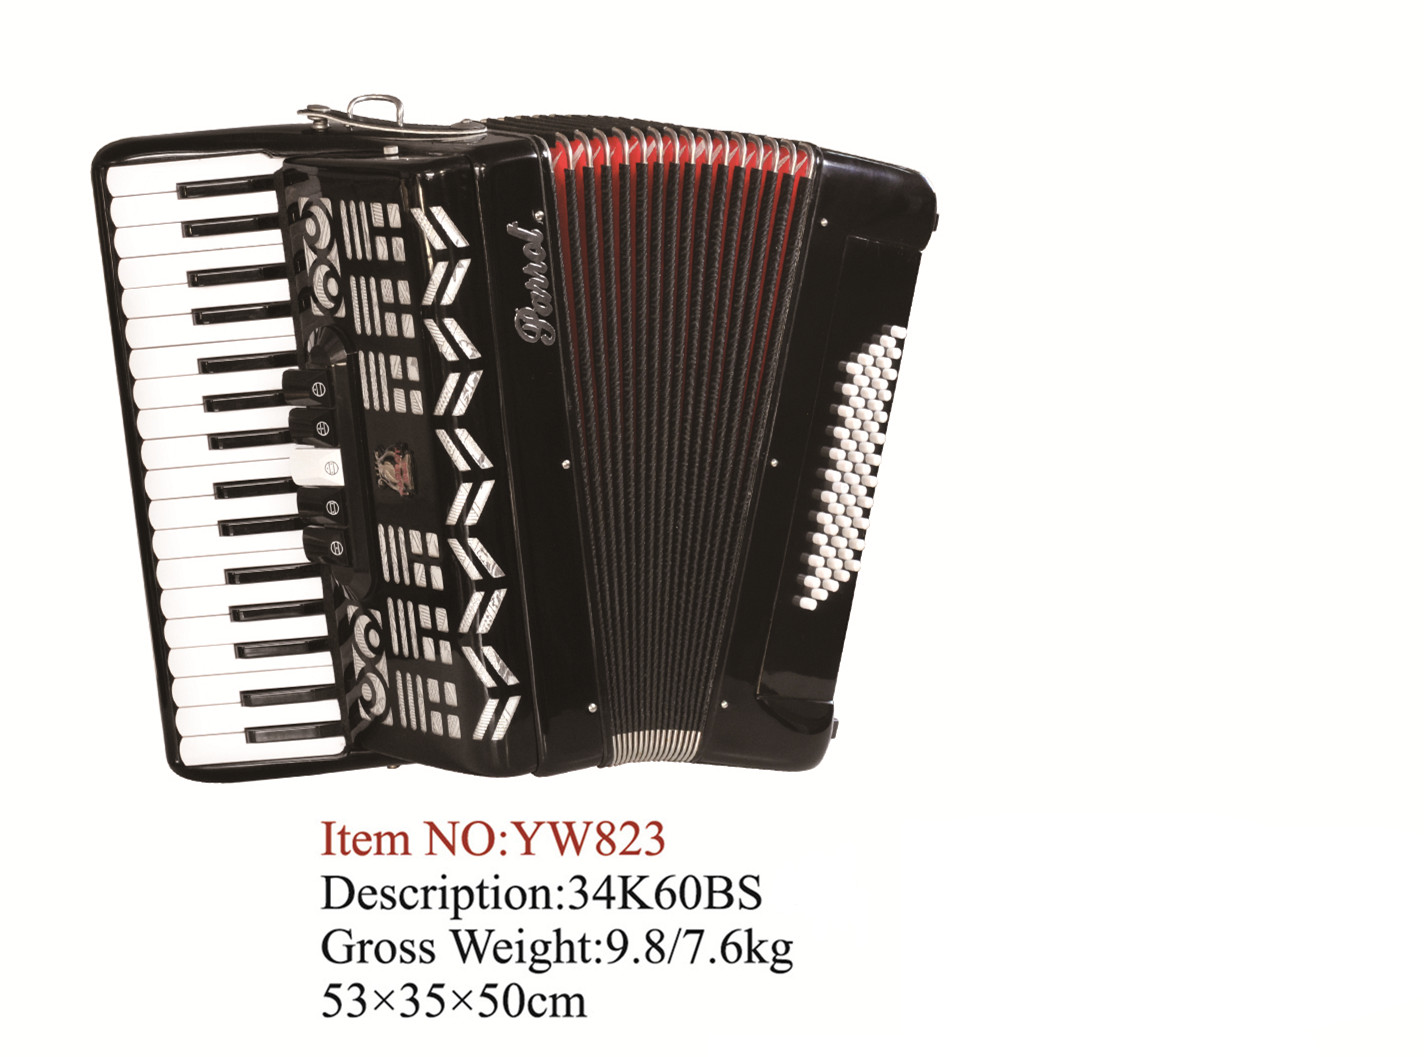 Parrot 34 Keys 60 Bass Piano Accordion With Case And Straps